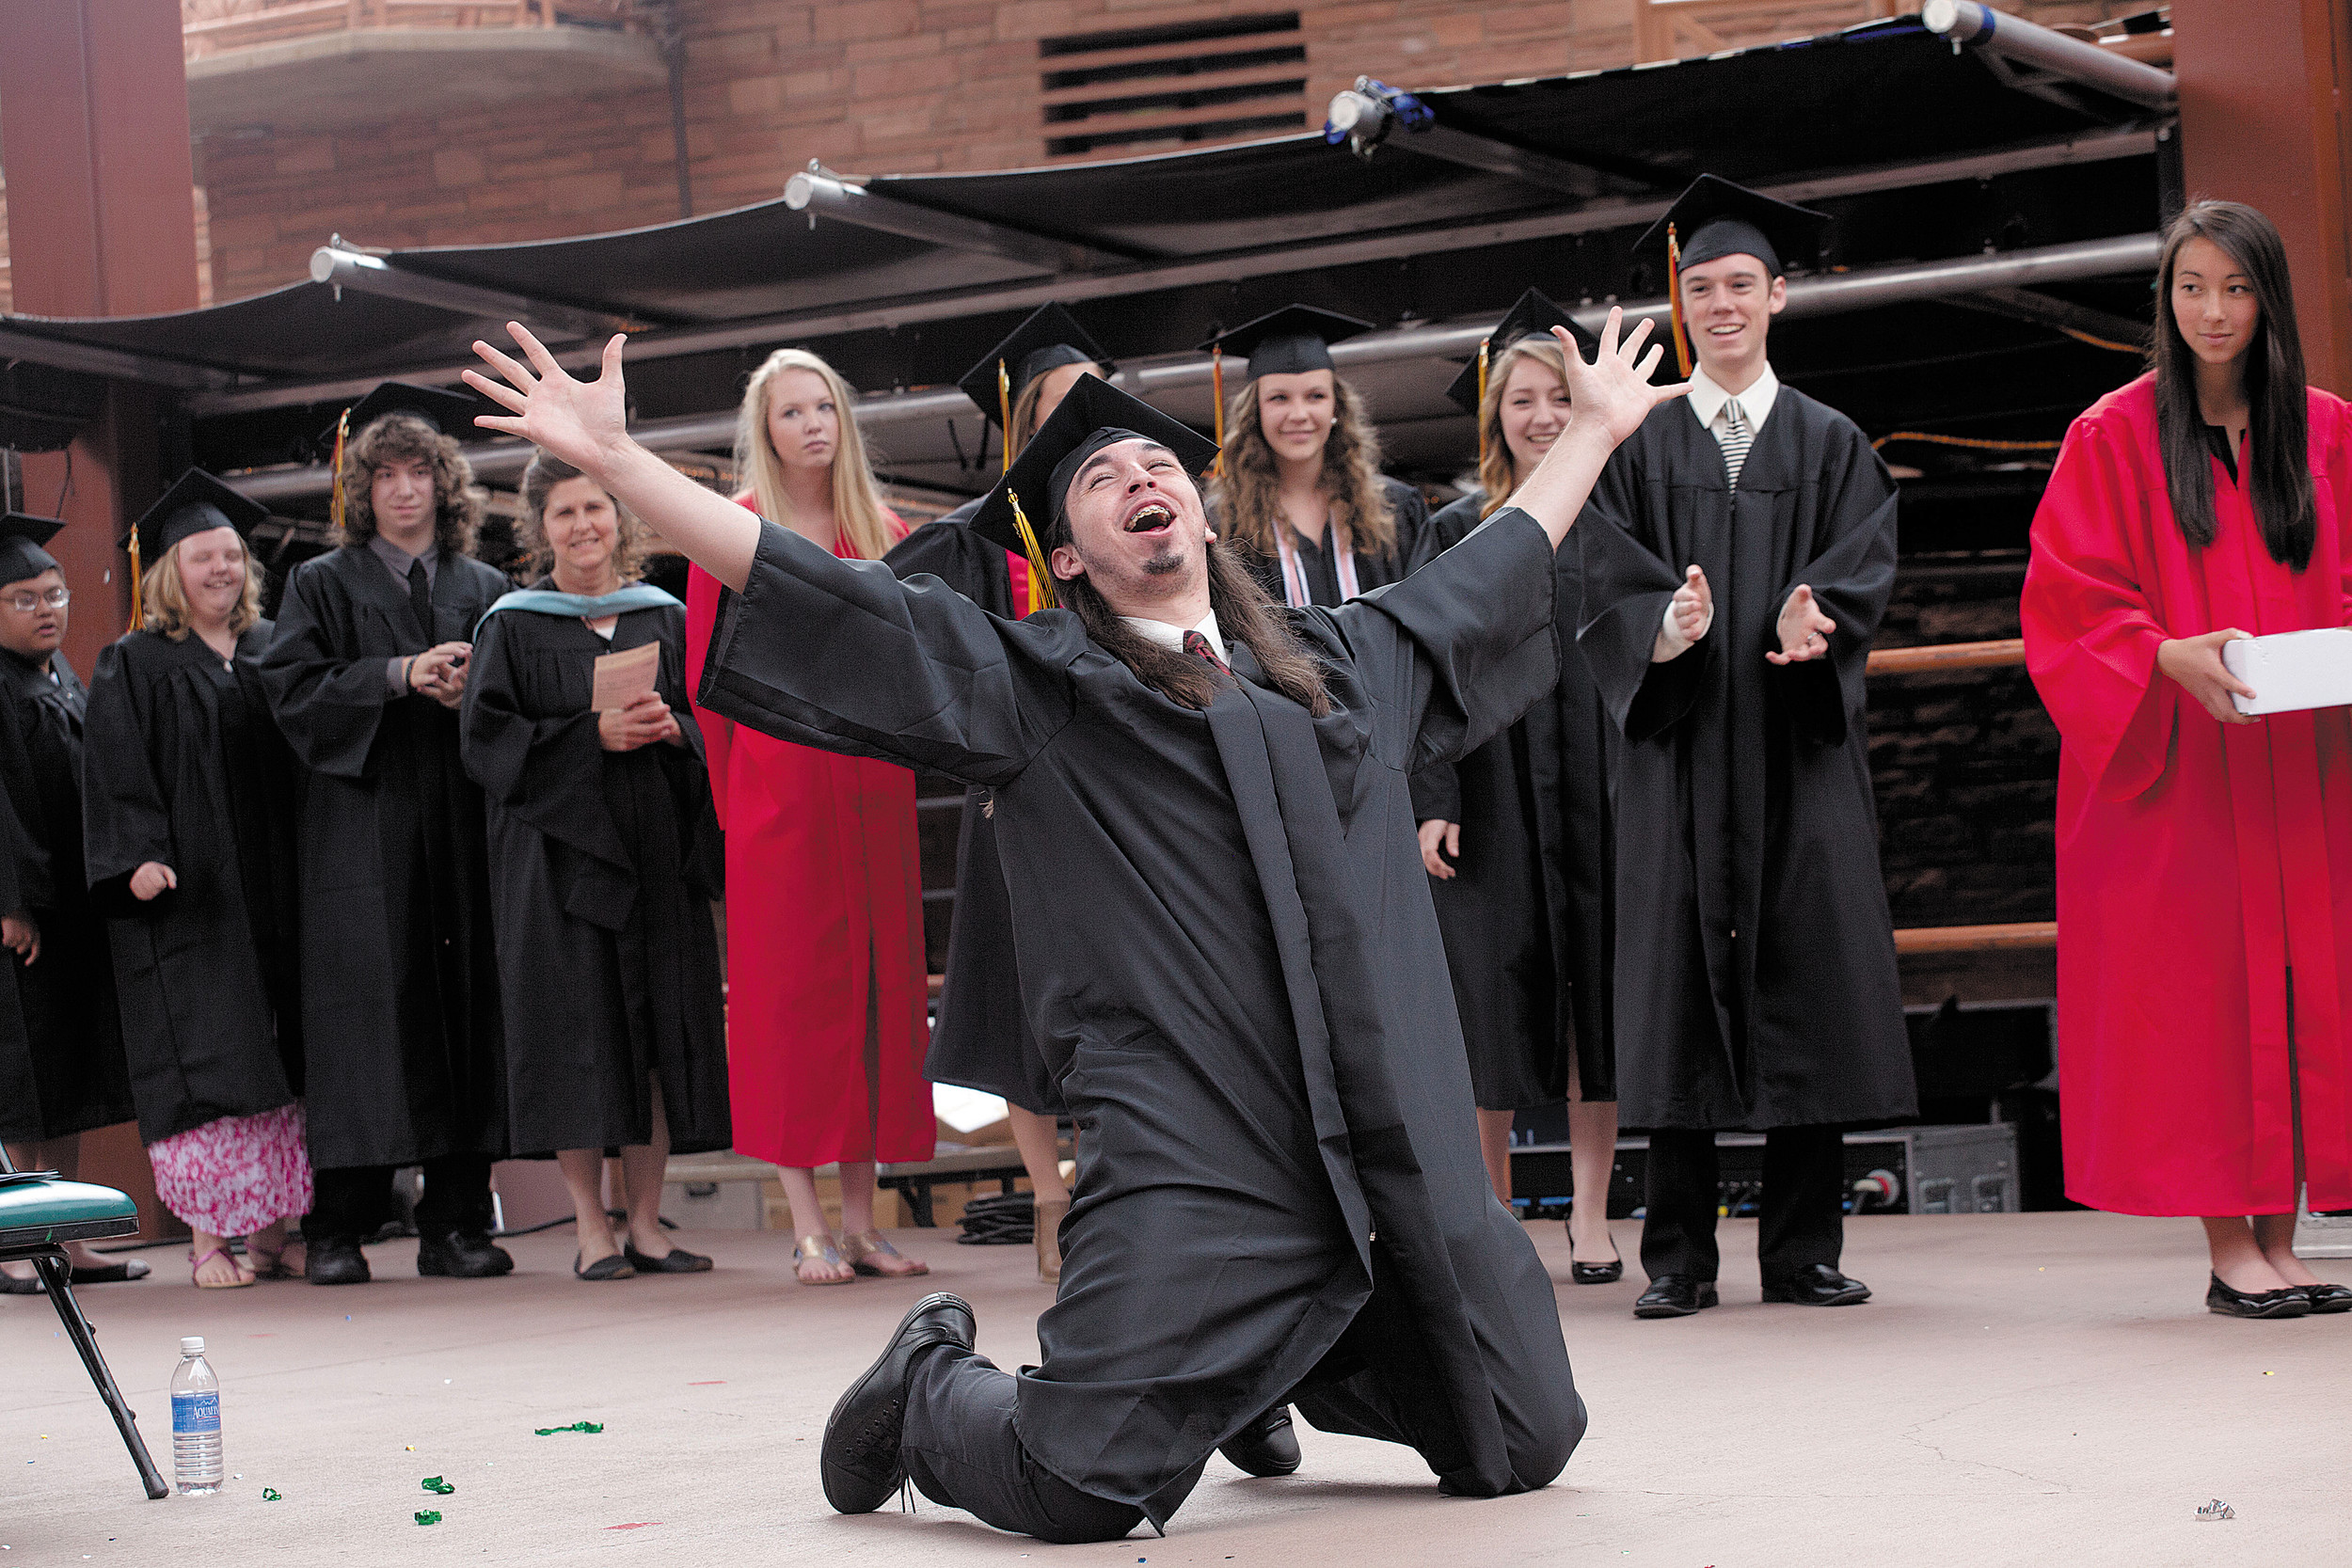 Thomas Rivera drops to his knees after his name is called to receive a diploma during Castle View High School's graduation ceremony at Red Rocks Amphitheater on May 21.